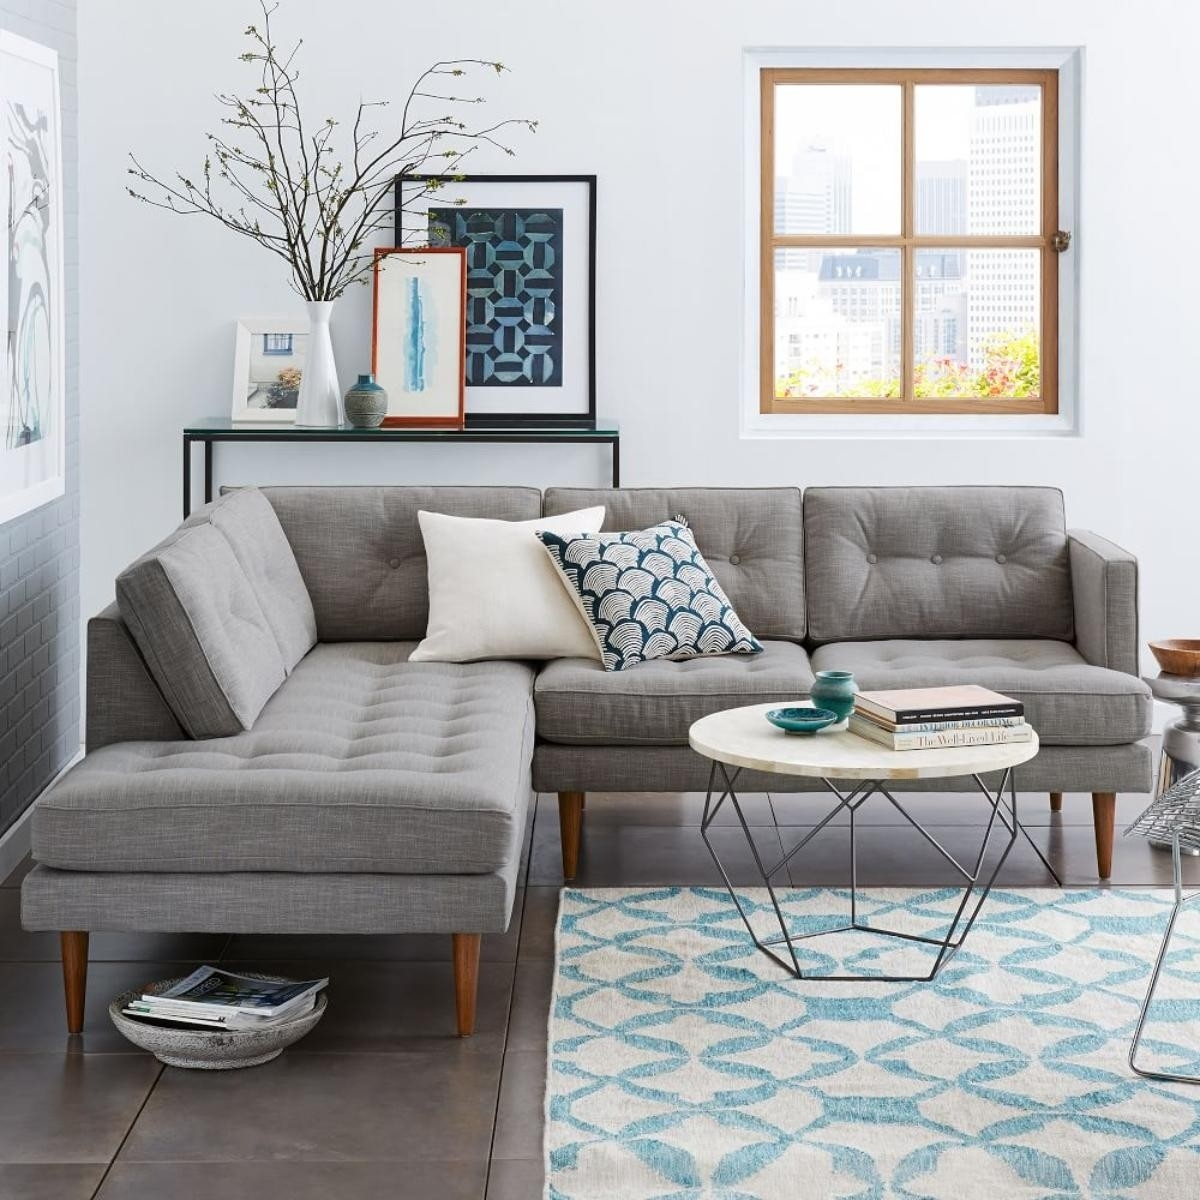 New West Elm Sectional Sofa – Buildsimplehome Intended For West Elm Sectional Sofas (View 9 of 10)